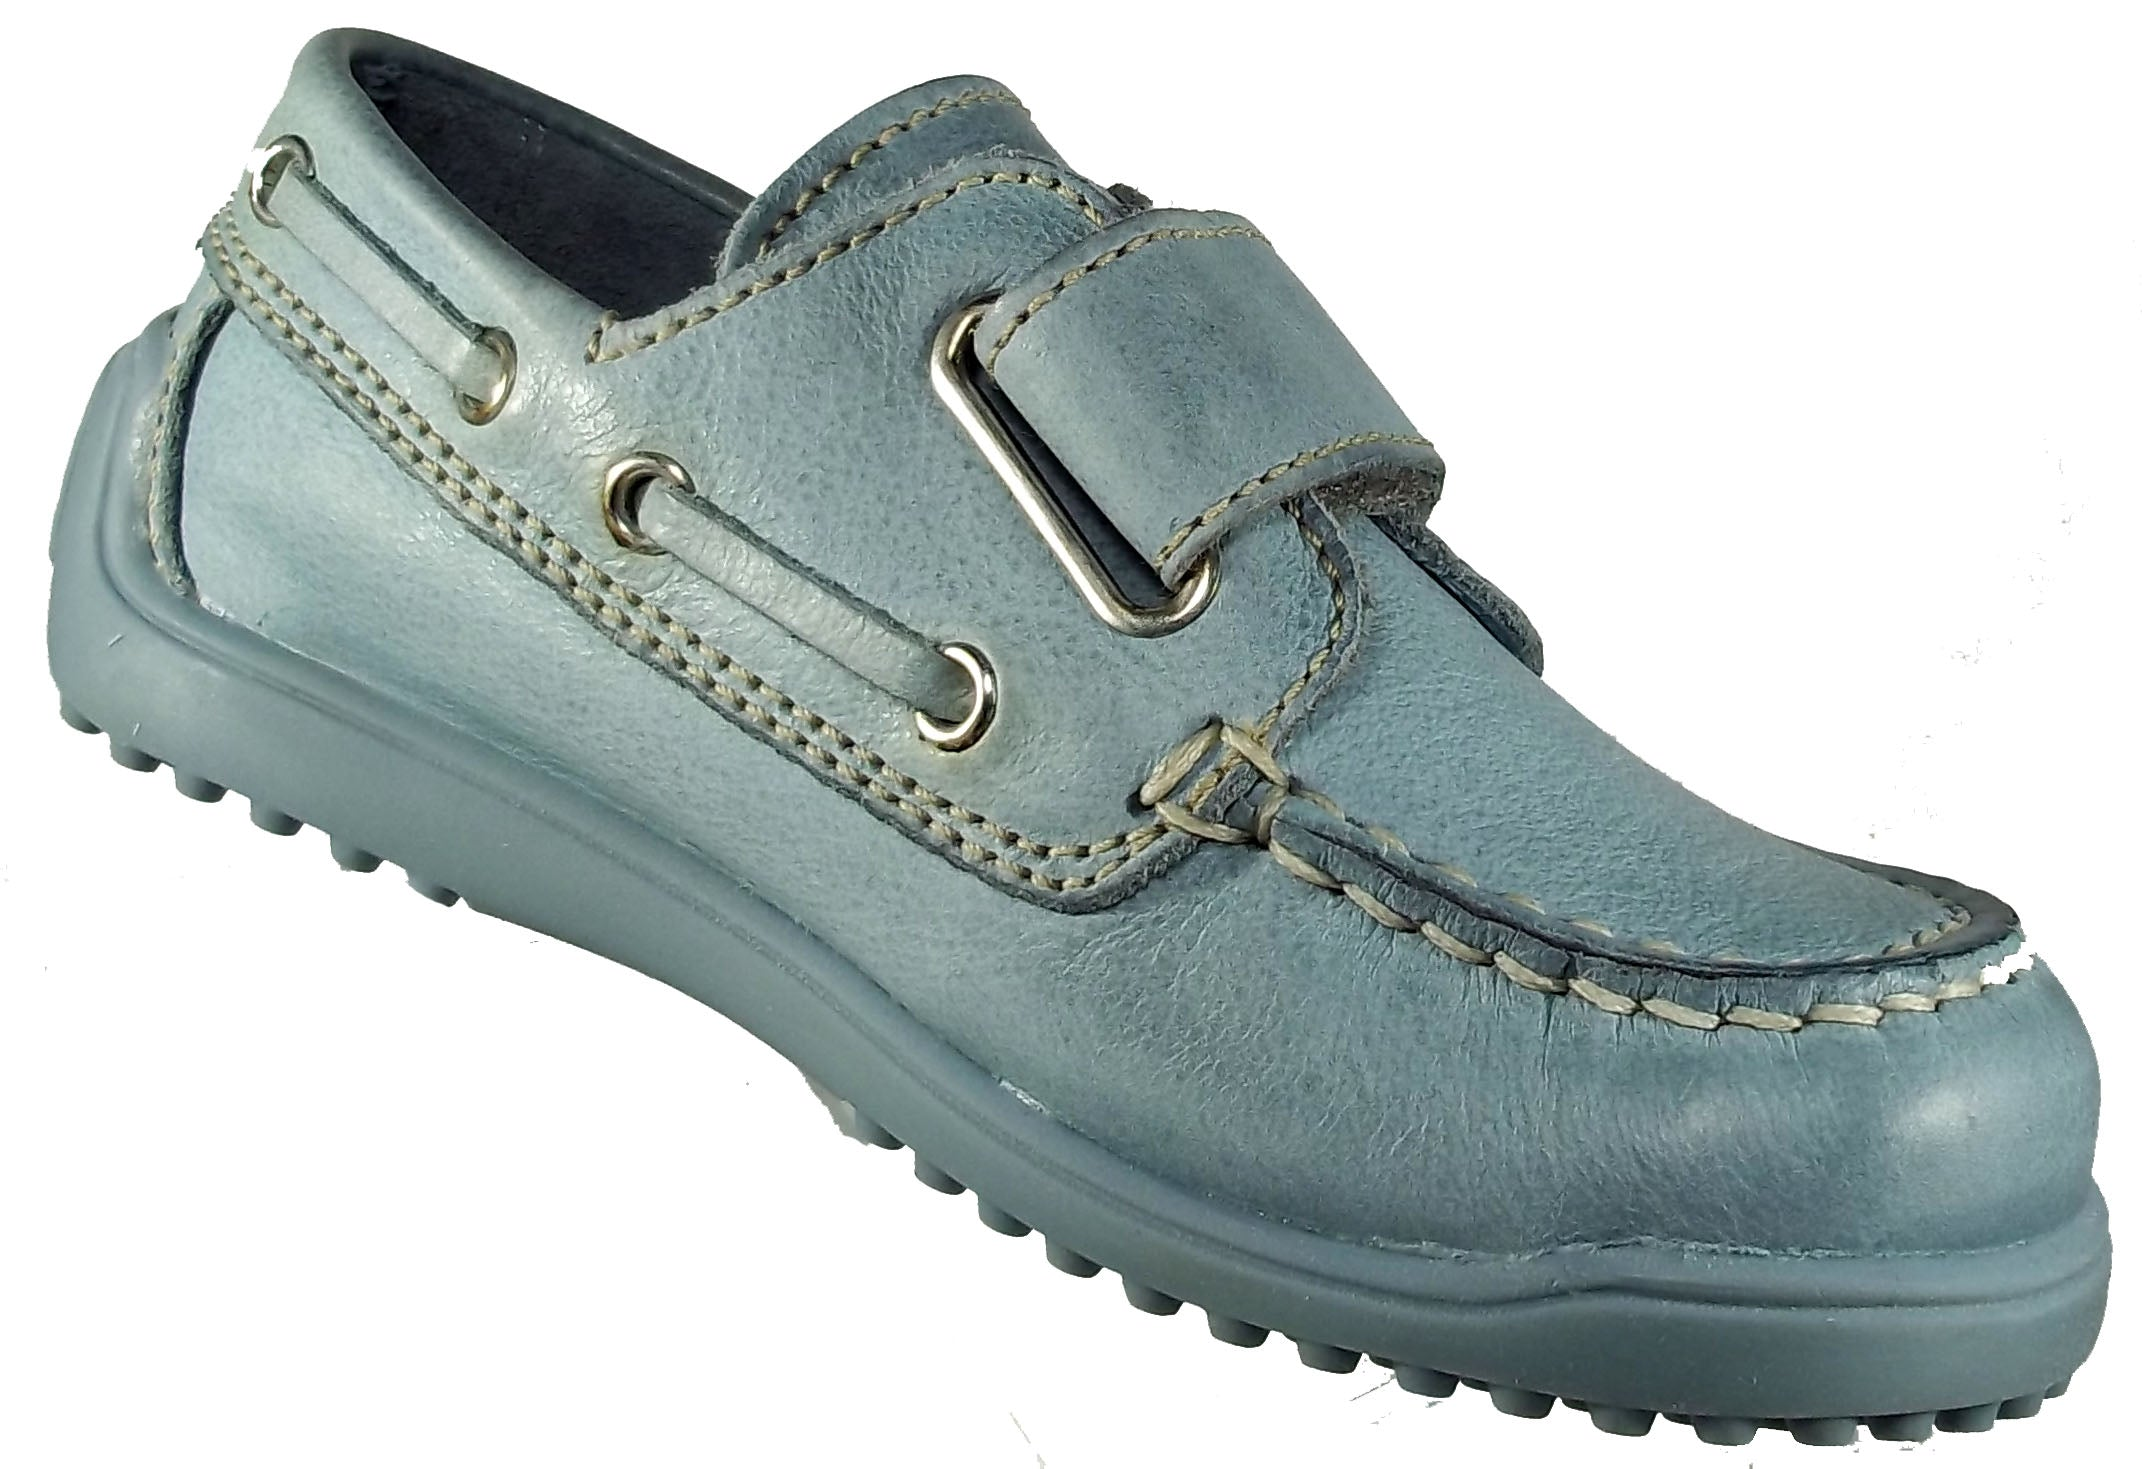 *FINAL SALE* 4110 - Light Blue